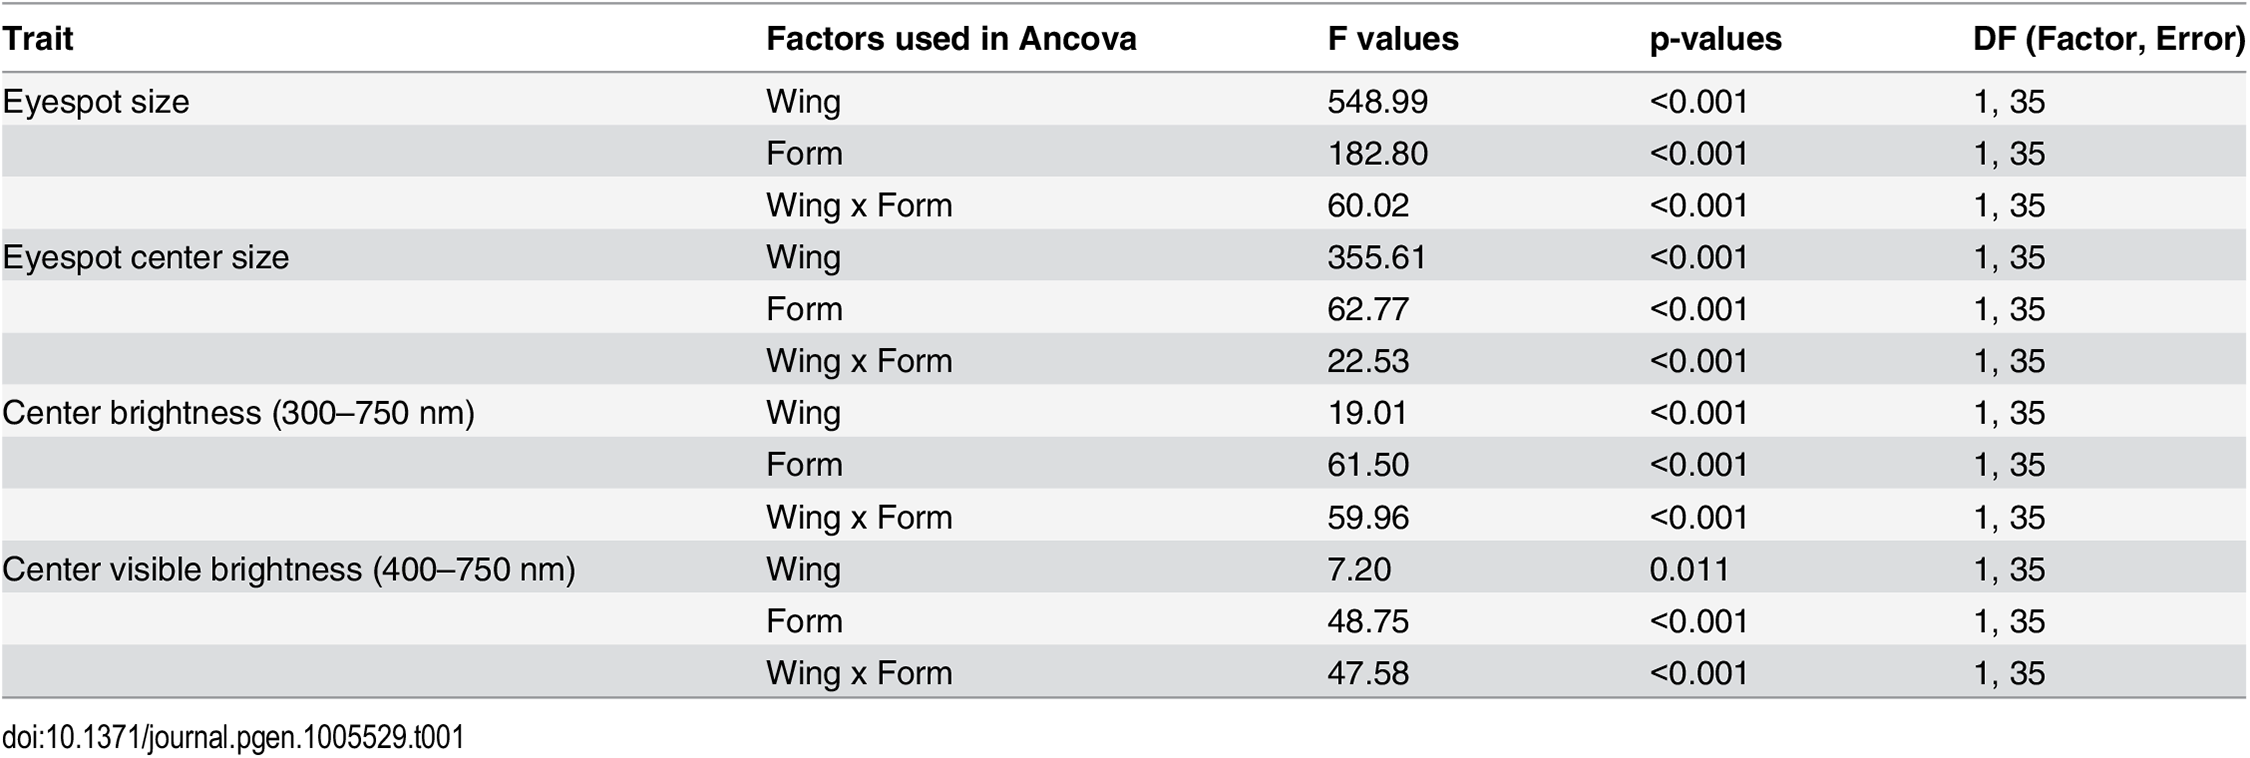 F statistics and p-values from analysis of covariance probing for differences in Cu1 eyespot size, eyespot center size, and center brightness between season form (DS and WS forms) and wing (FW and HW).